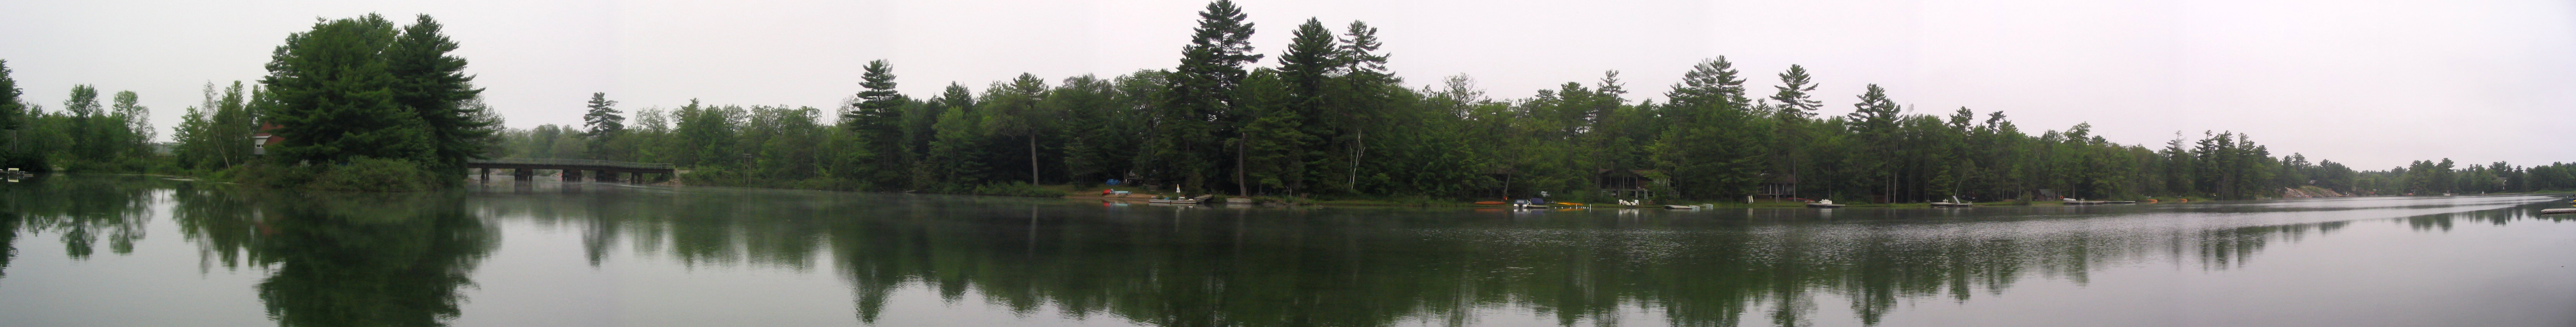 from the dock stiched